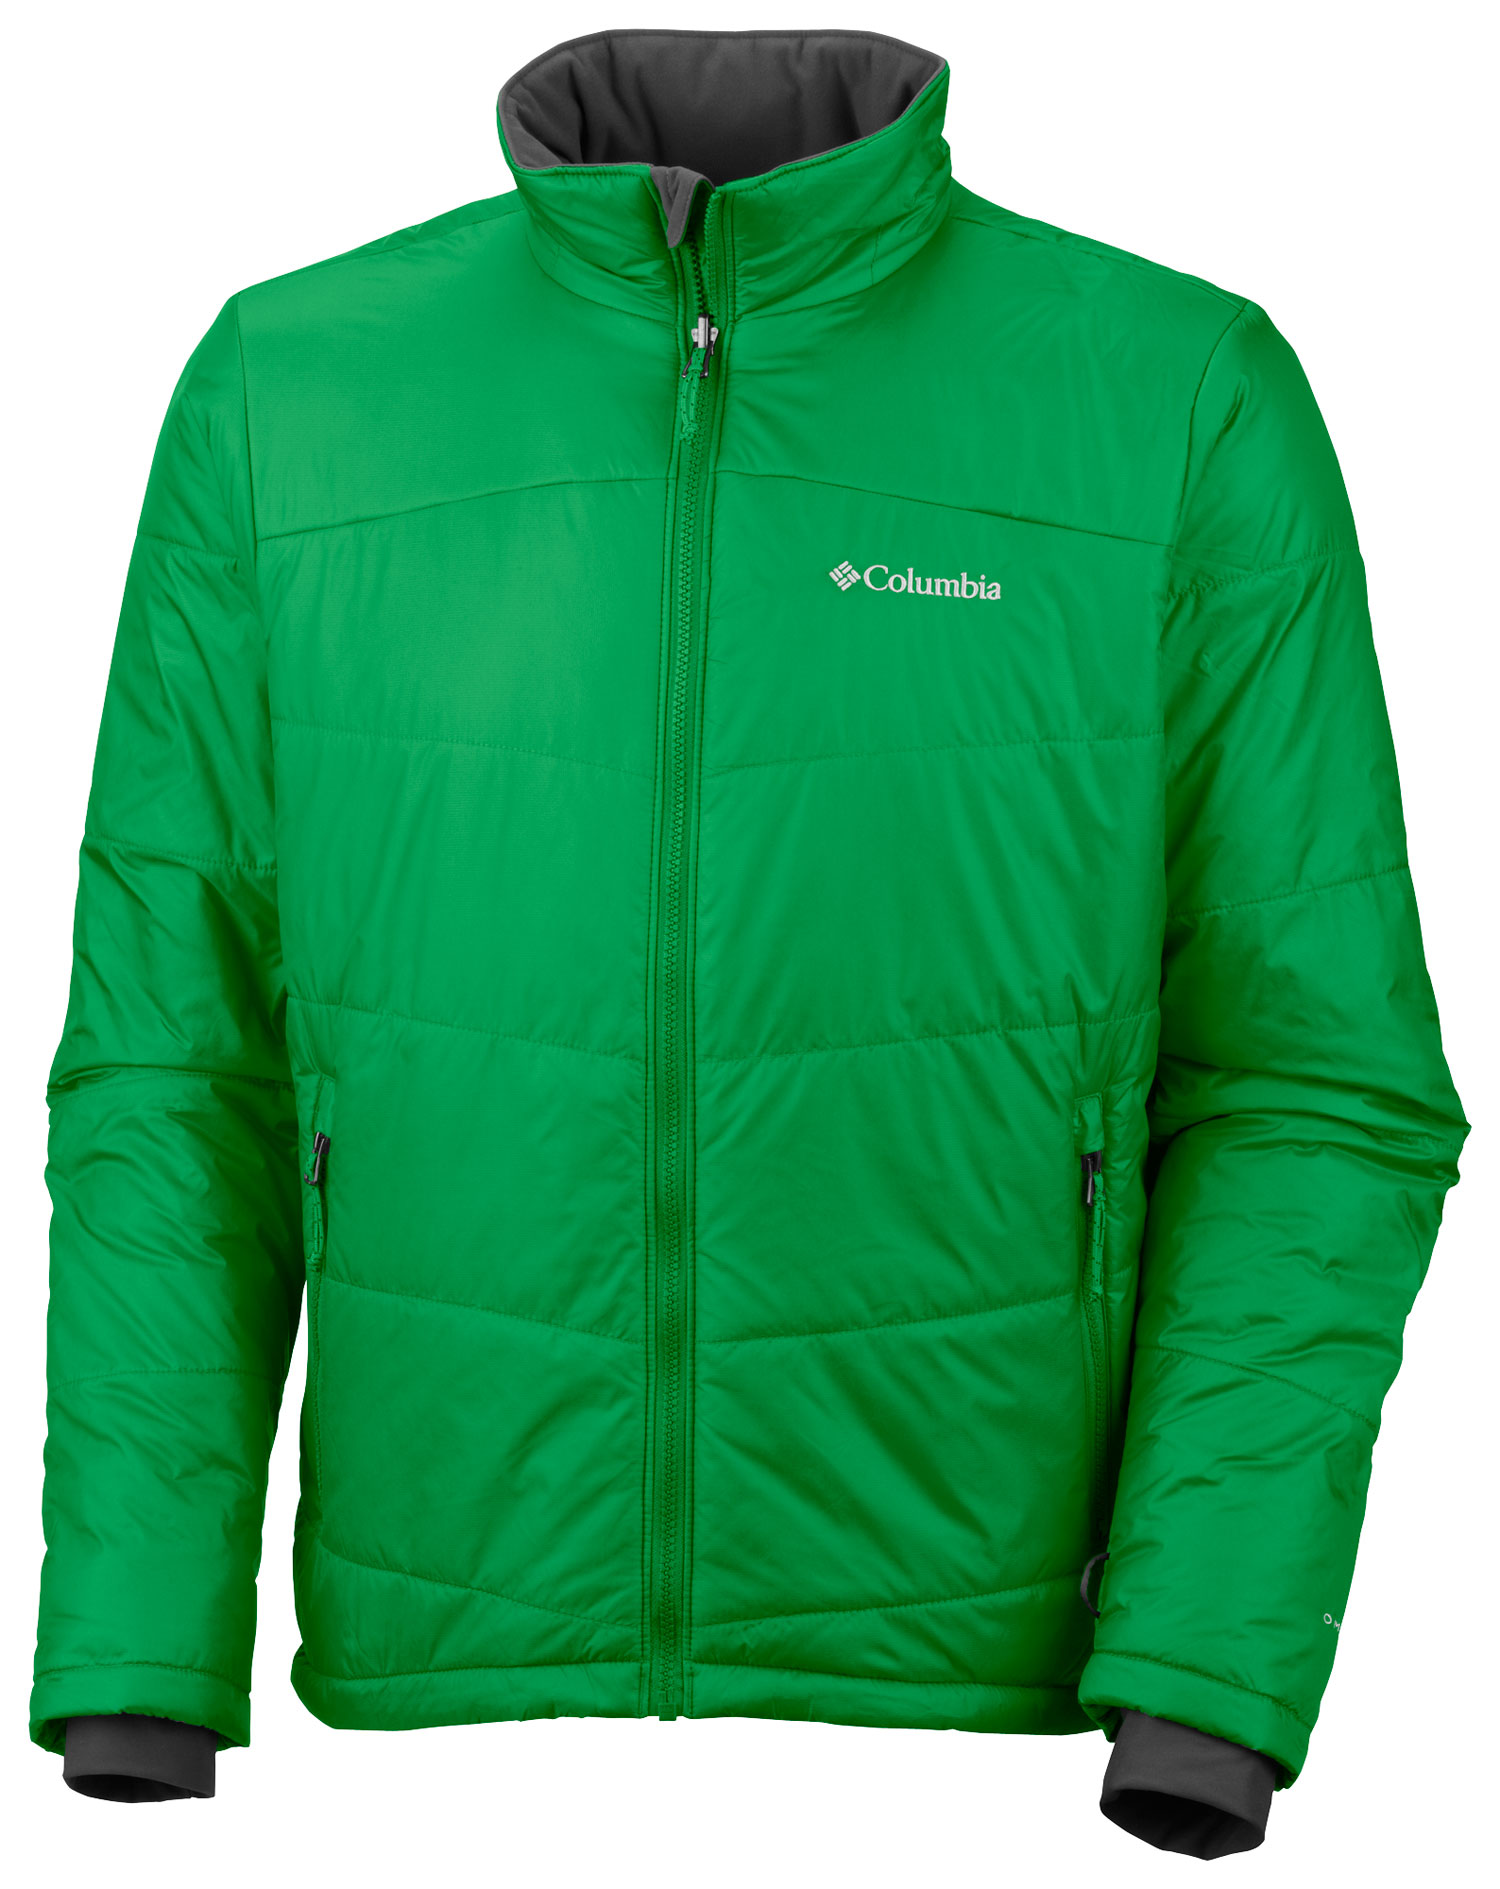 Key Features of the Columbia Shimmer Me Timbers II Jacket: FABRIC Shell: 100% nylon Shadow Rip ripstop. Lining: 100% polyester Thermal Reflective. Insulation: 50% polyester/50% recycled polyester, 100g OH insulation. FIT Modern Classic Omni-Heat thermal reflective and insulated Omni-Shield advanced repellency Zip-in and 3-point Interchange System Interior security pocket Drawcord adjustable hem Zip-closed hand pockets - $103.95